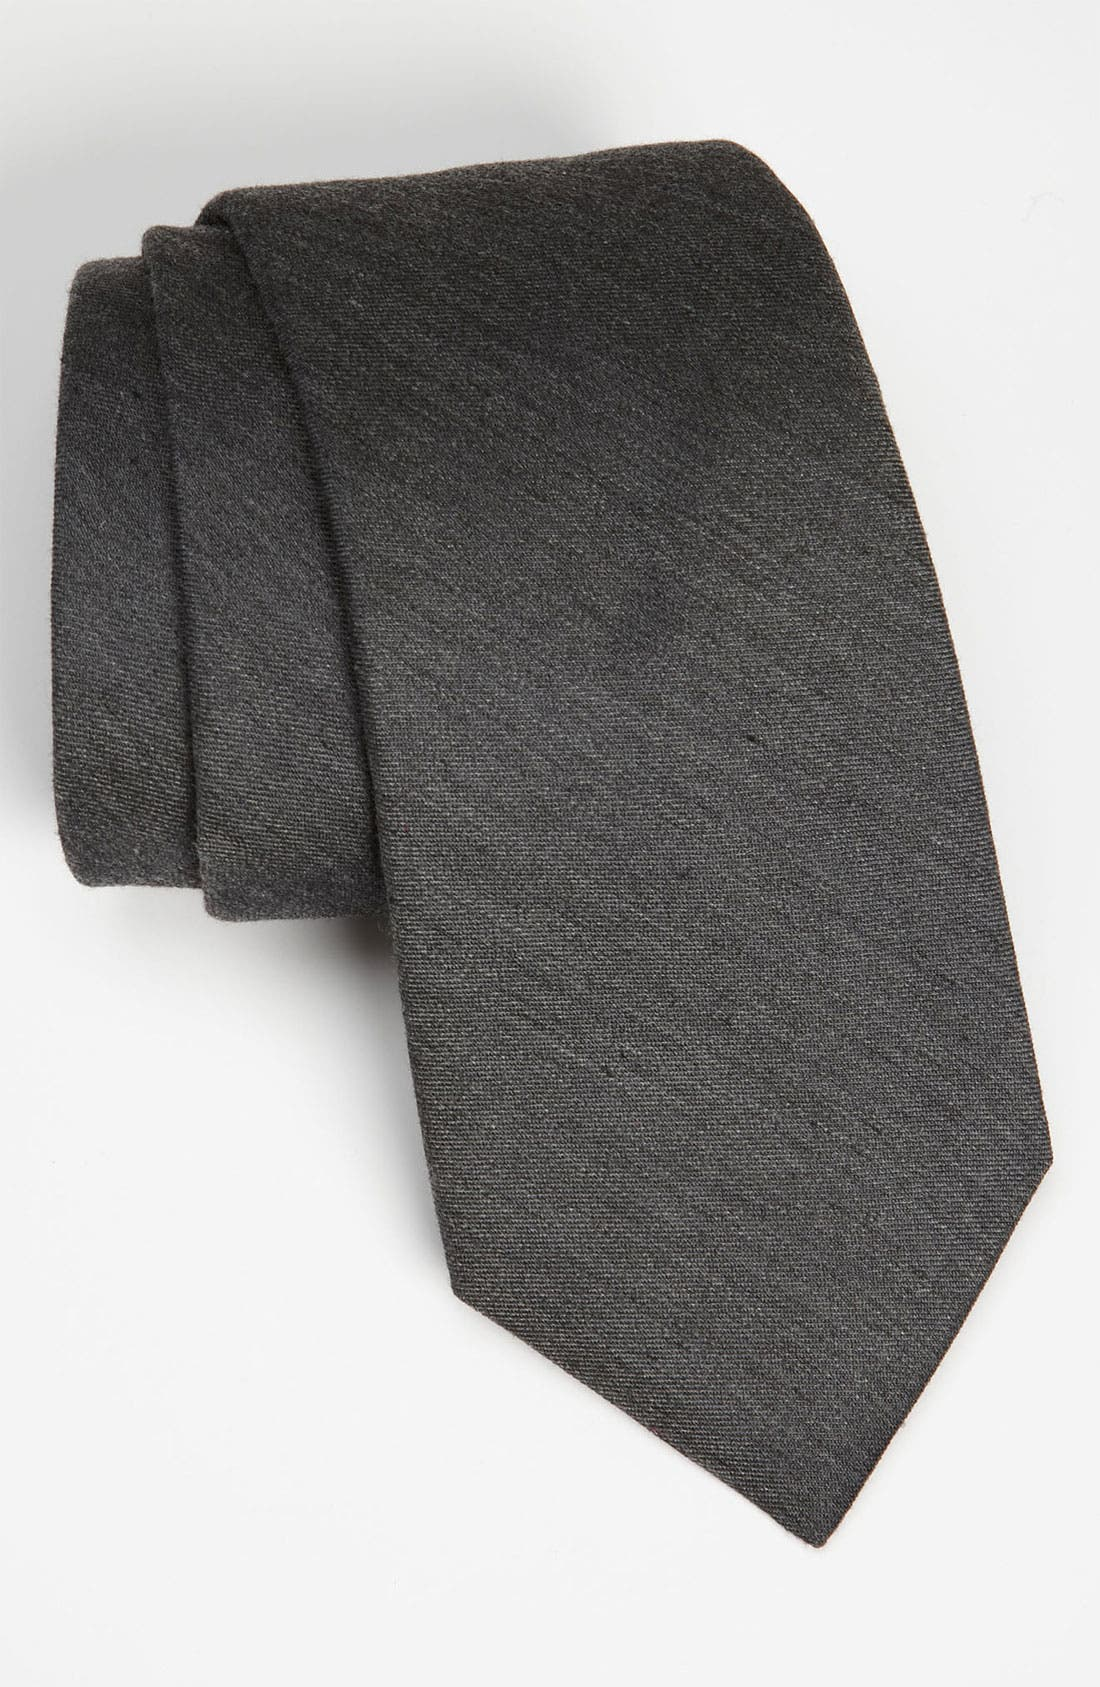 Main Image - Michael Kors Woven Silk Blend Tie